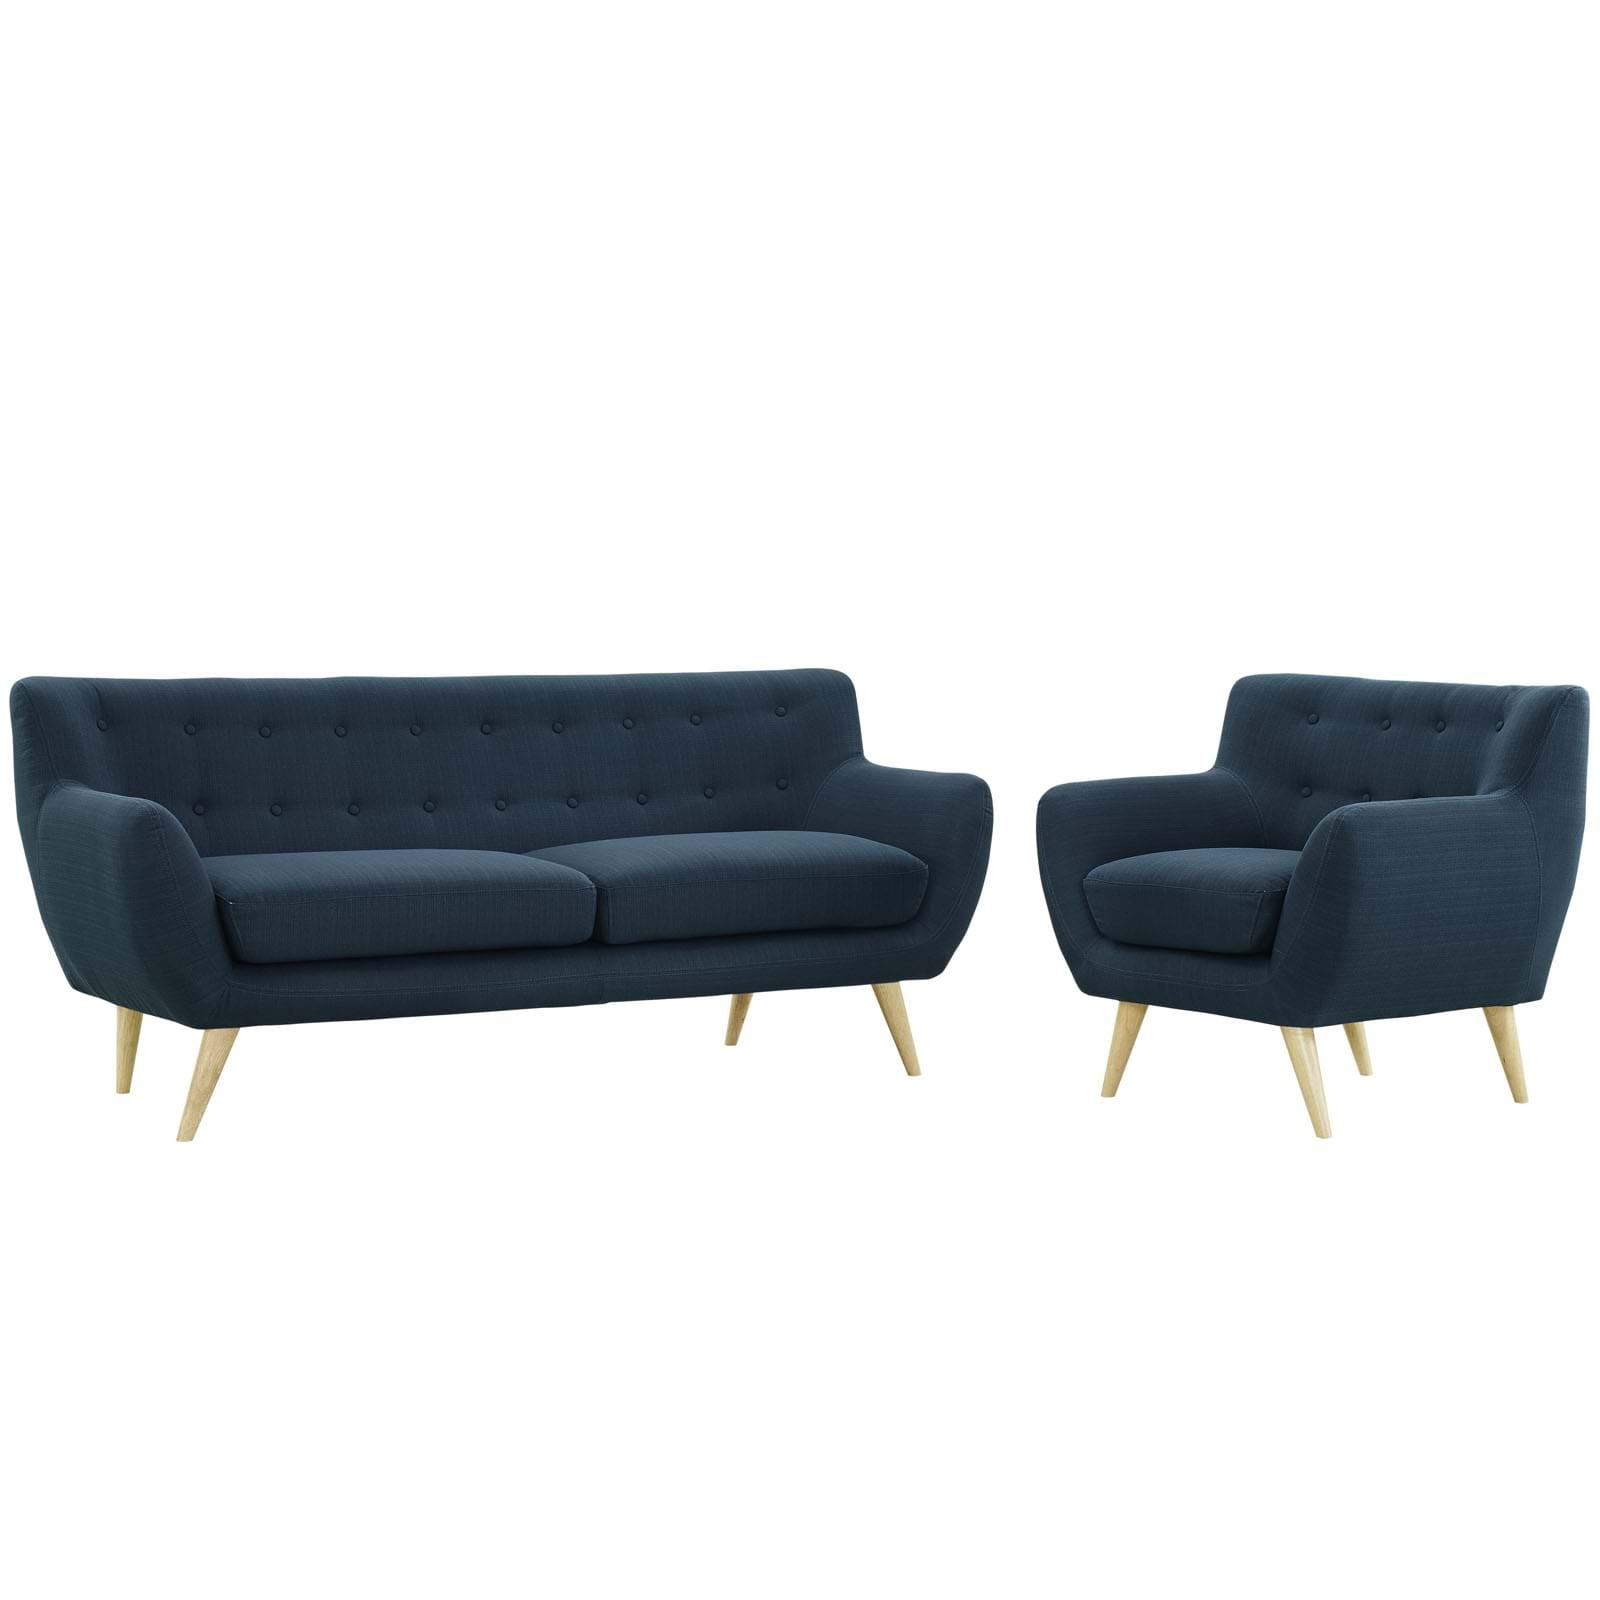 Remark Living Room Set - 2 Piece